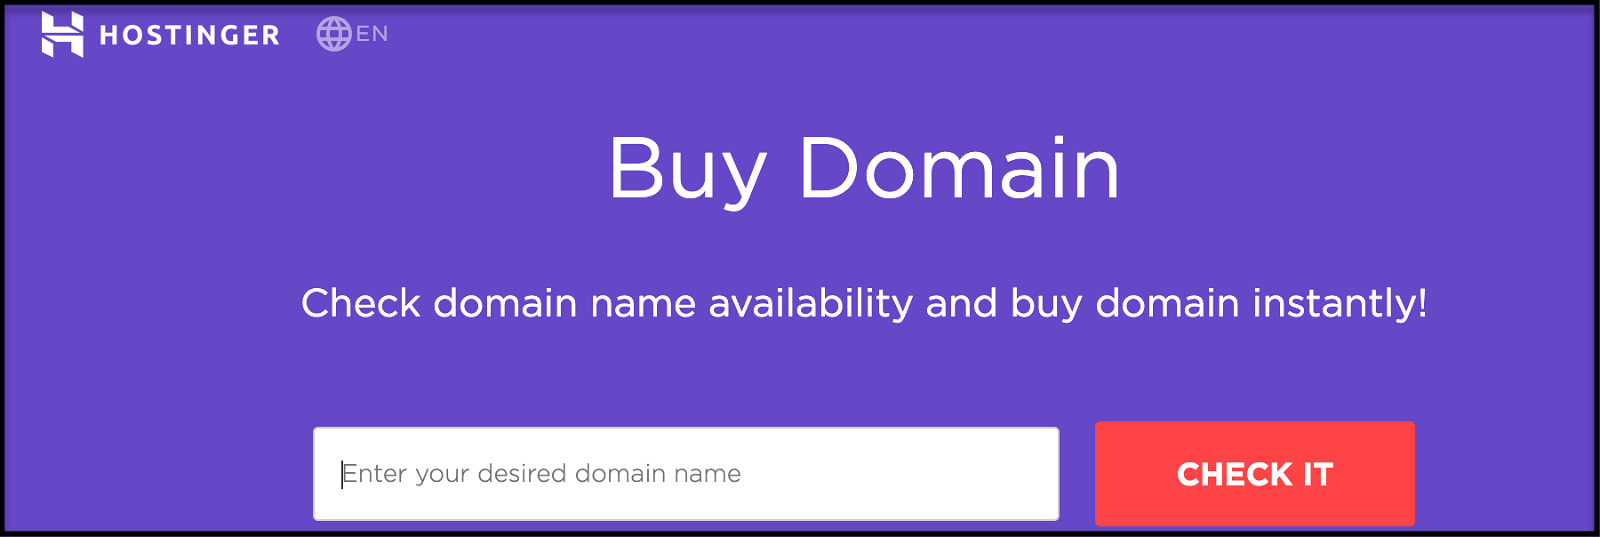 1631492973_395_6-Best-Domain-Registrars-that-Accept-Bitcoin-and-Altcoins